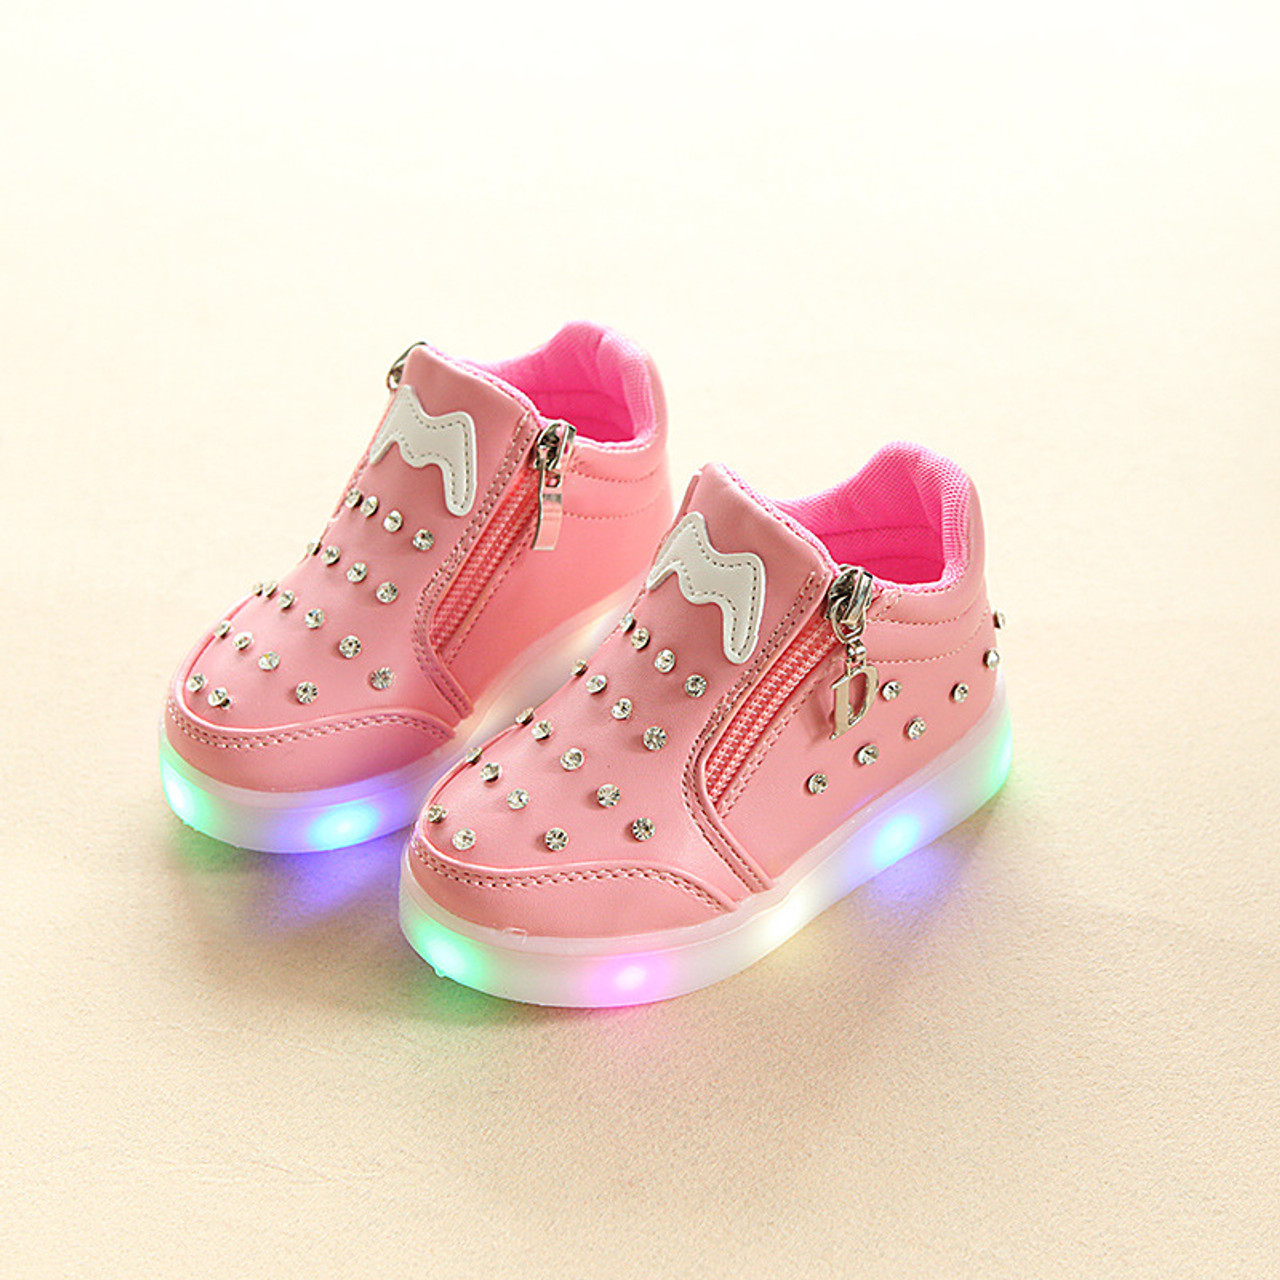 ... 2018 New girls boys shoes fashion LED lighted toddlers cute lovely baby  boots warm colorful glitter ... 7f9f2c5fd146